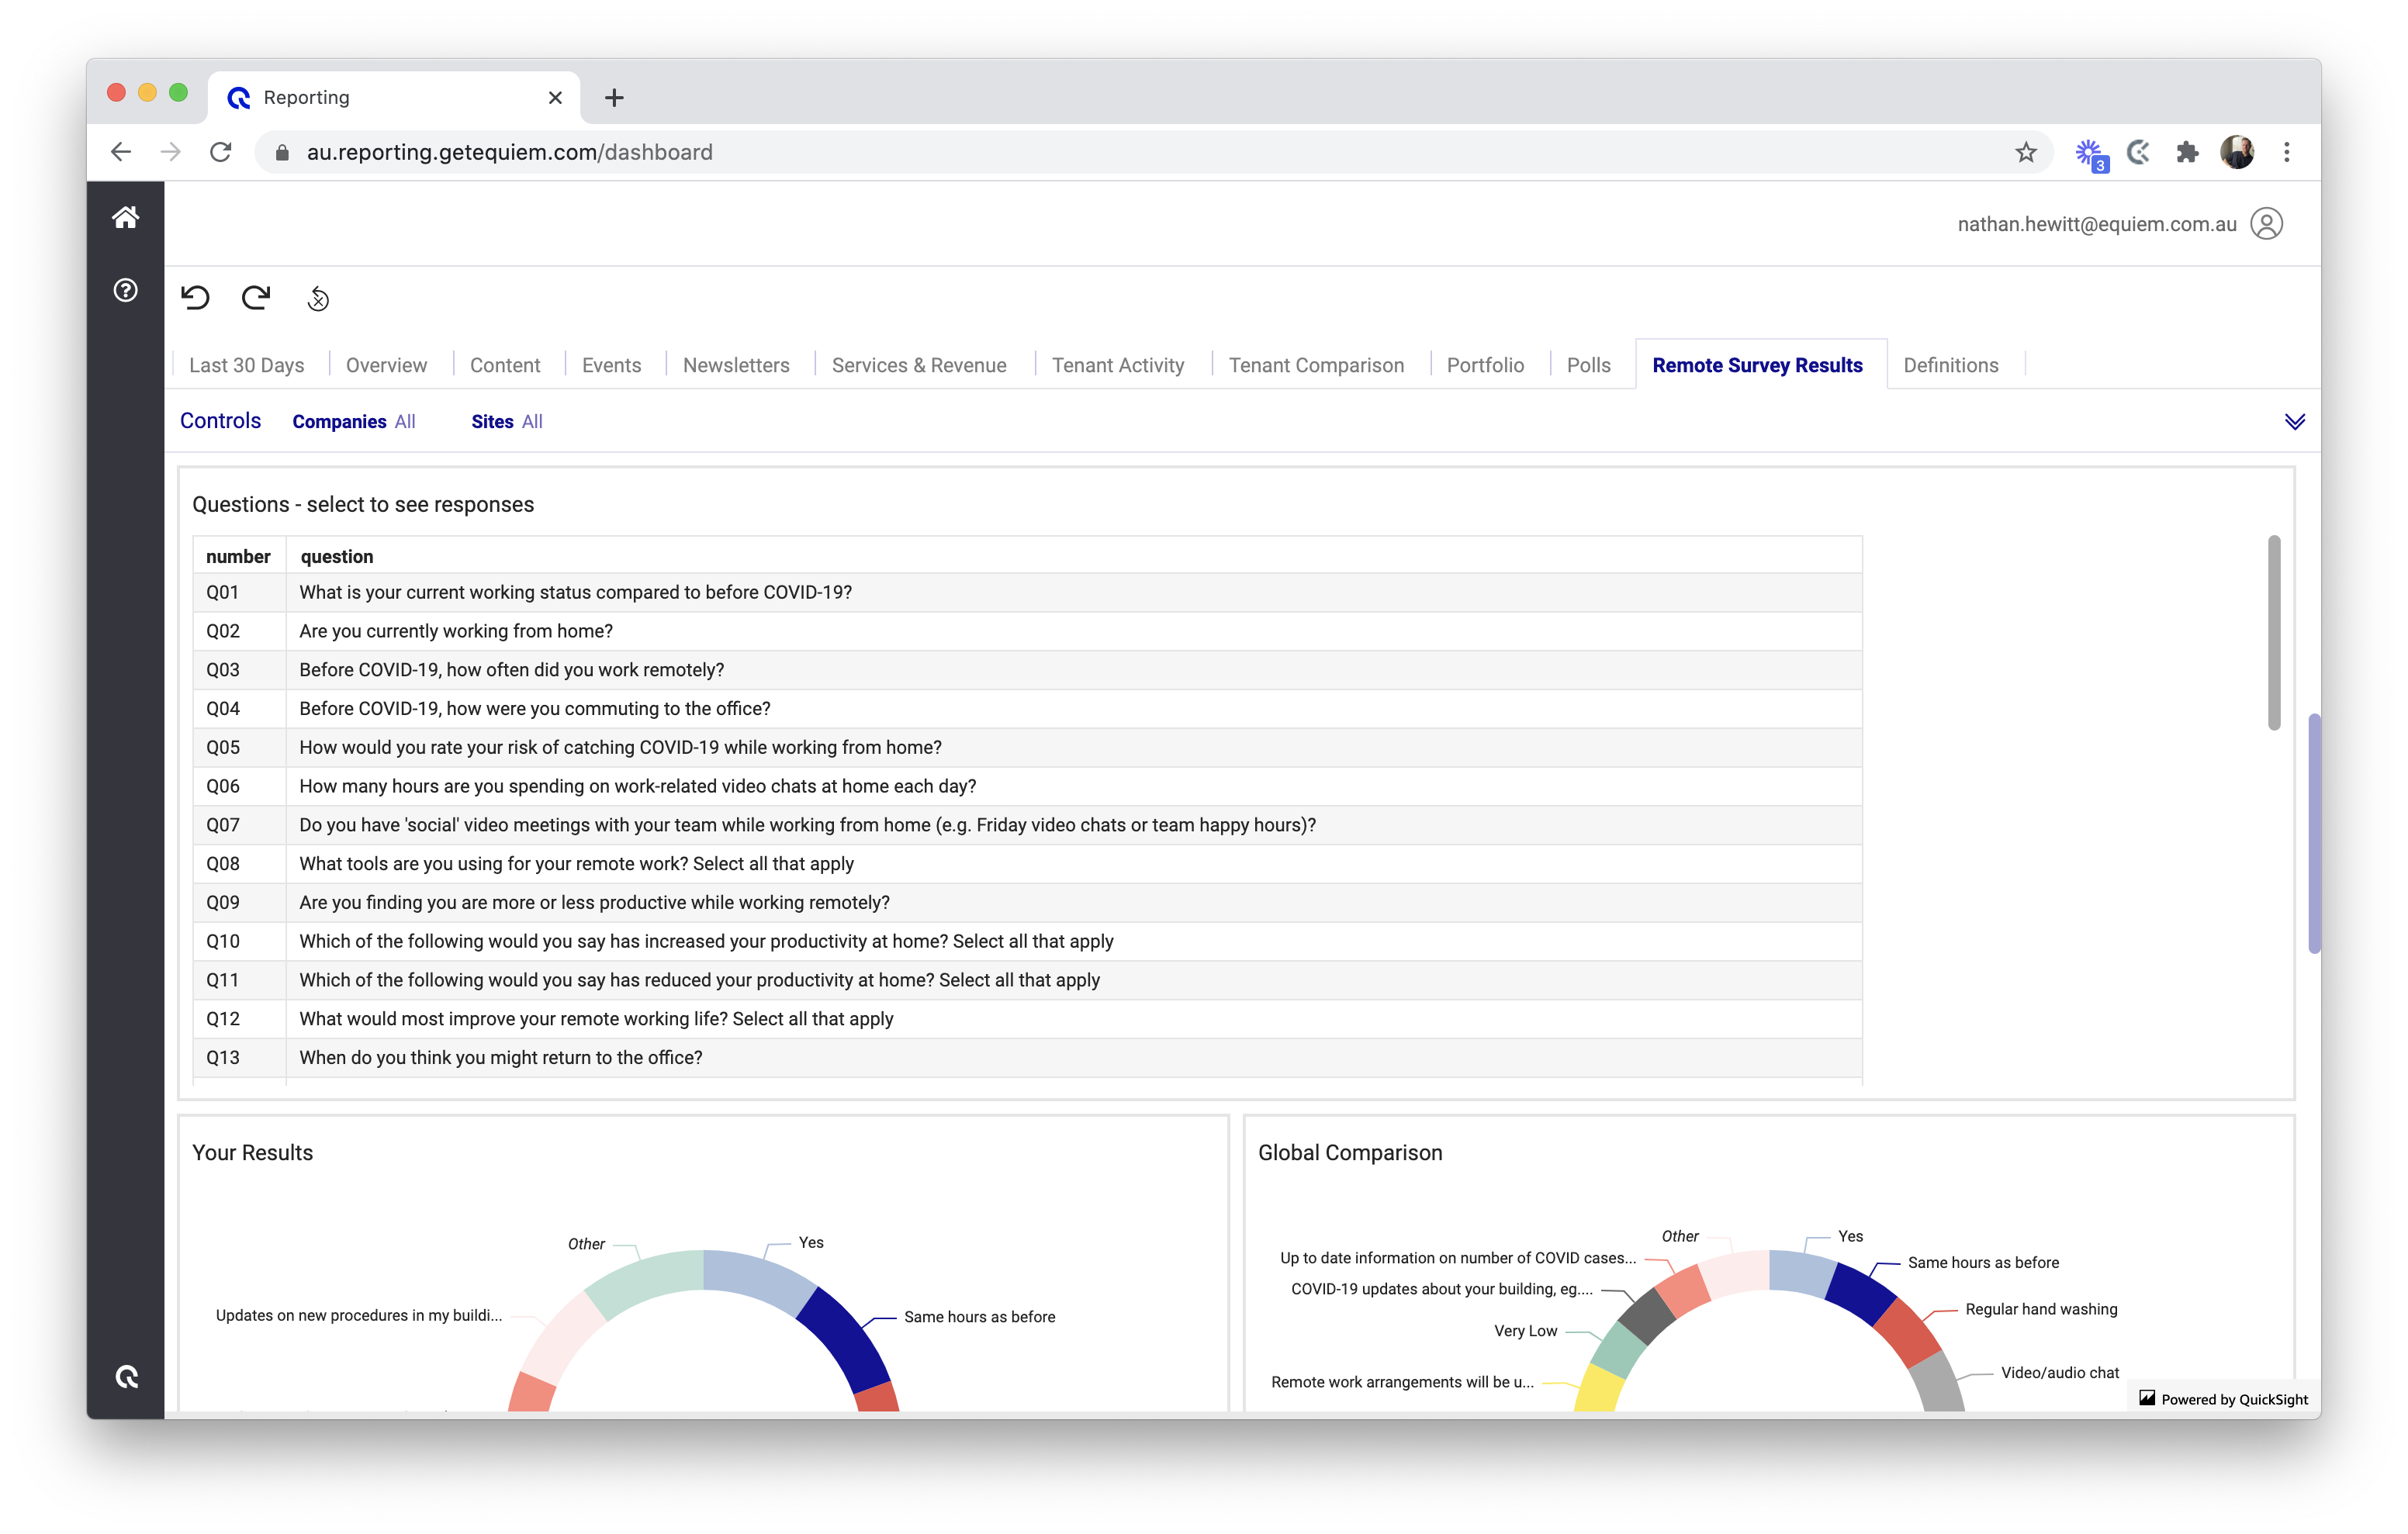 The 'Polls' dashboard of Equiem's Analytics product.